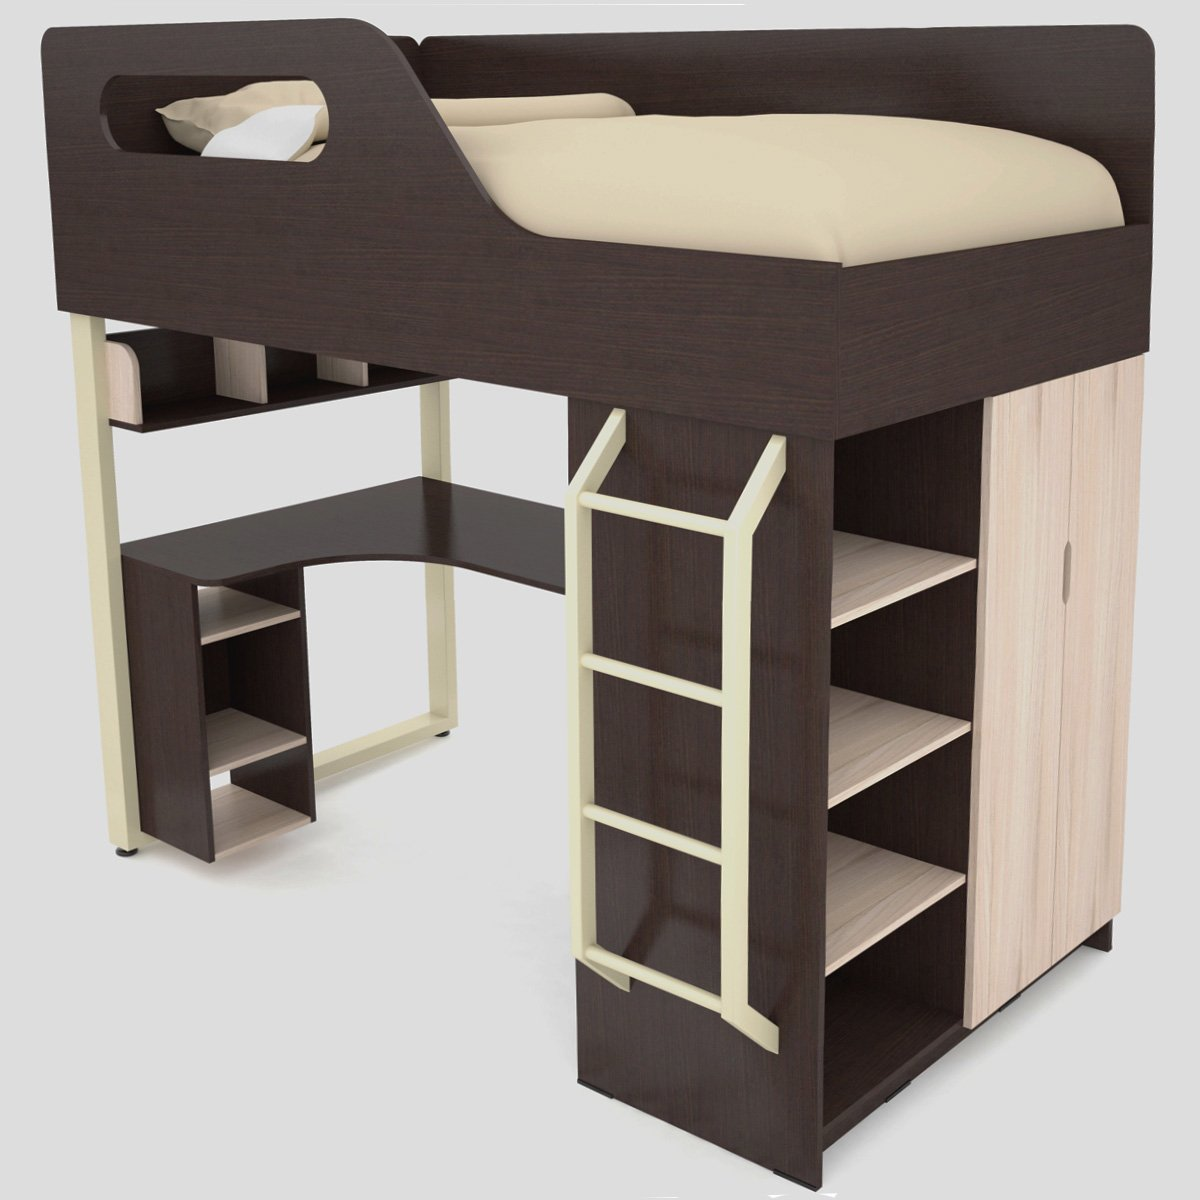 Muebles sears monterrey obtenga ideas dise o de muebles for Muebles contemporaneos monterrey